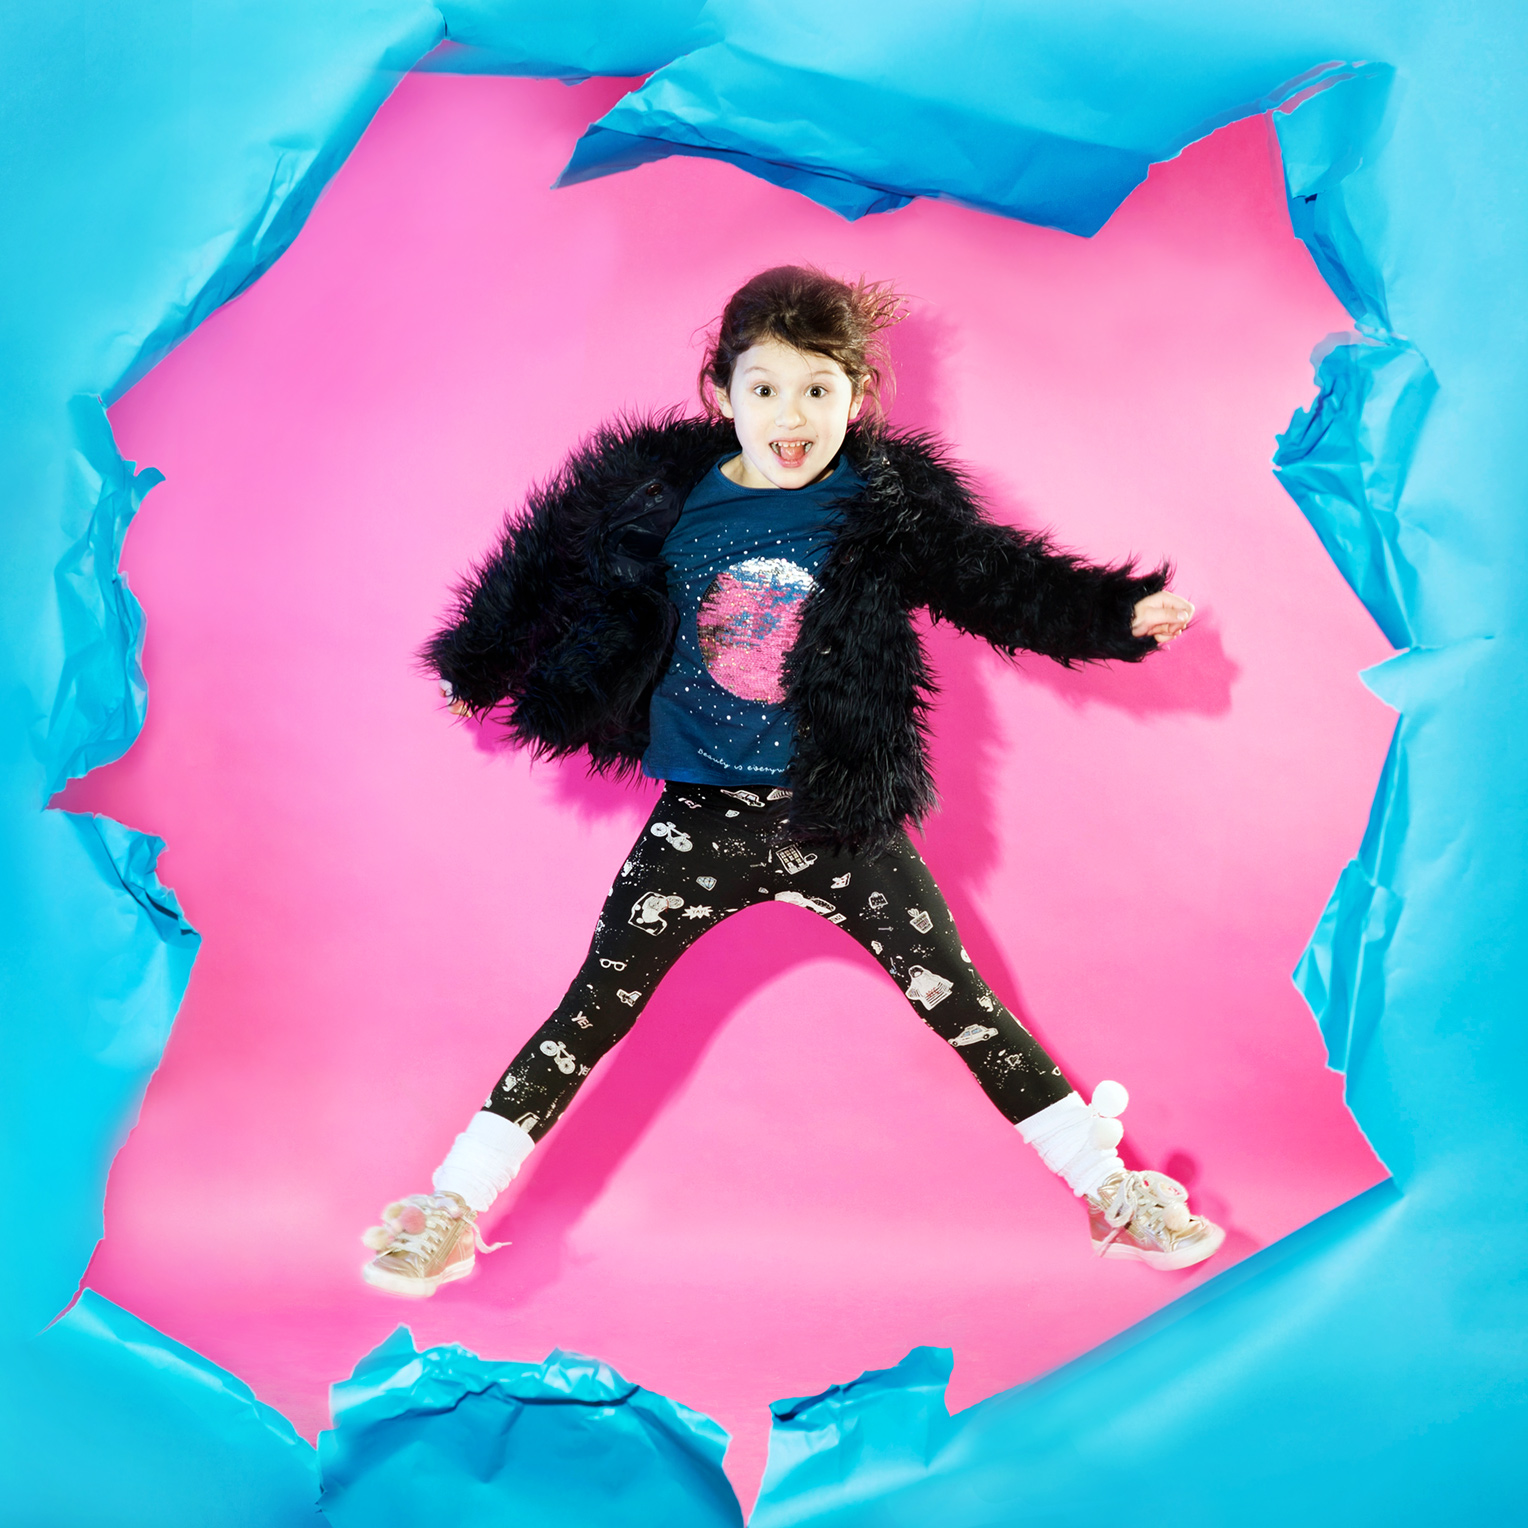 girl jumping in pink and blue studio